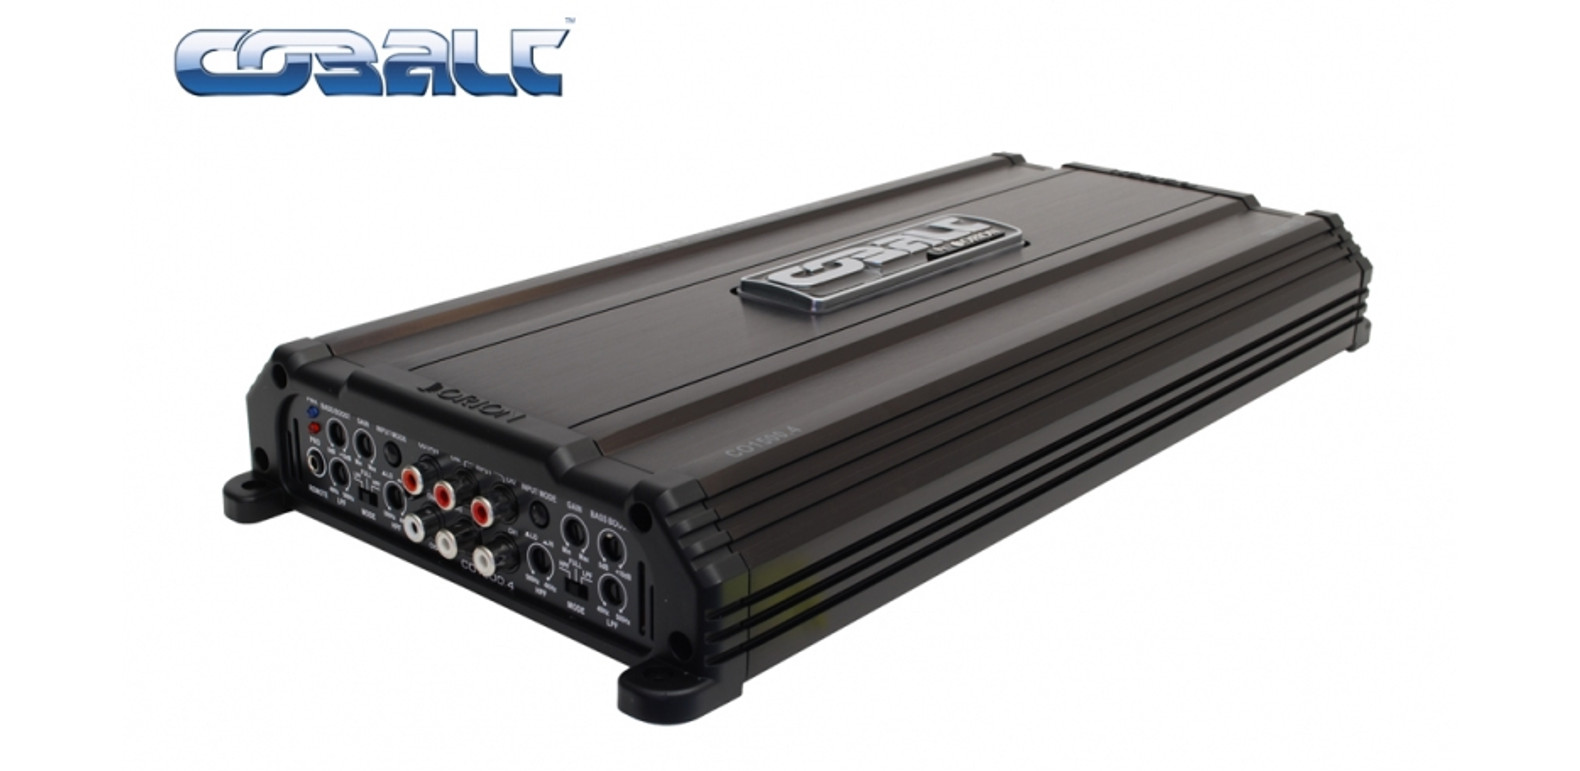 ORION COBALT CB1500 4, 4 CHANNEL AMP 1500 WATTS STEREO 3000 WATTS MAX